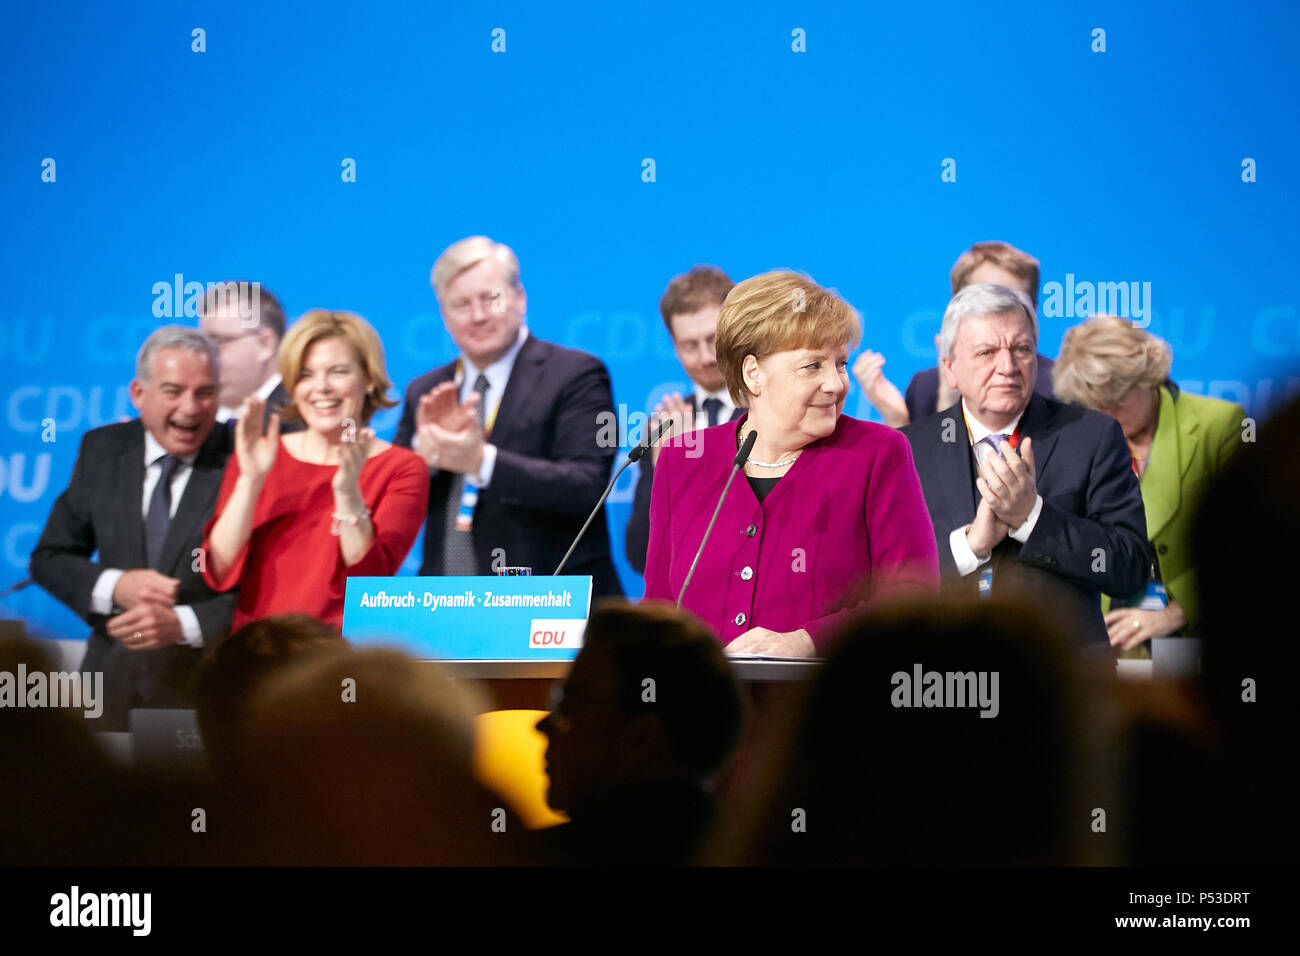 Berlin, Germany - The party leader Angela Merkel at the 30th Federal Party Congress of the CDU. Stock Photo